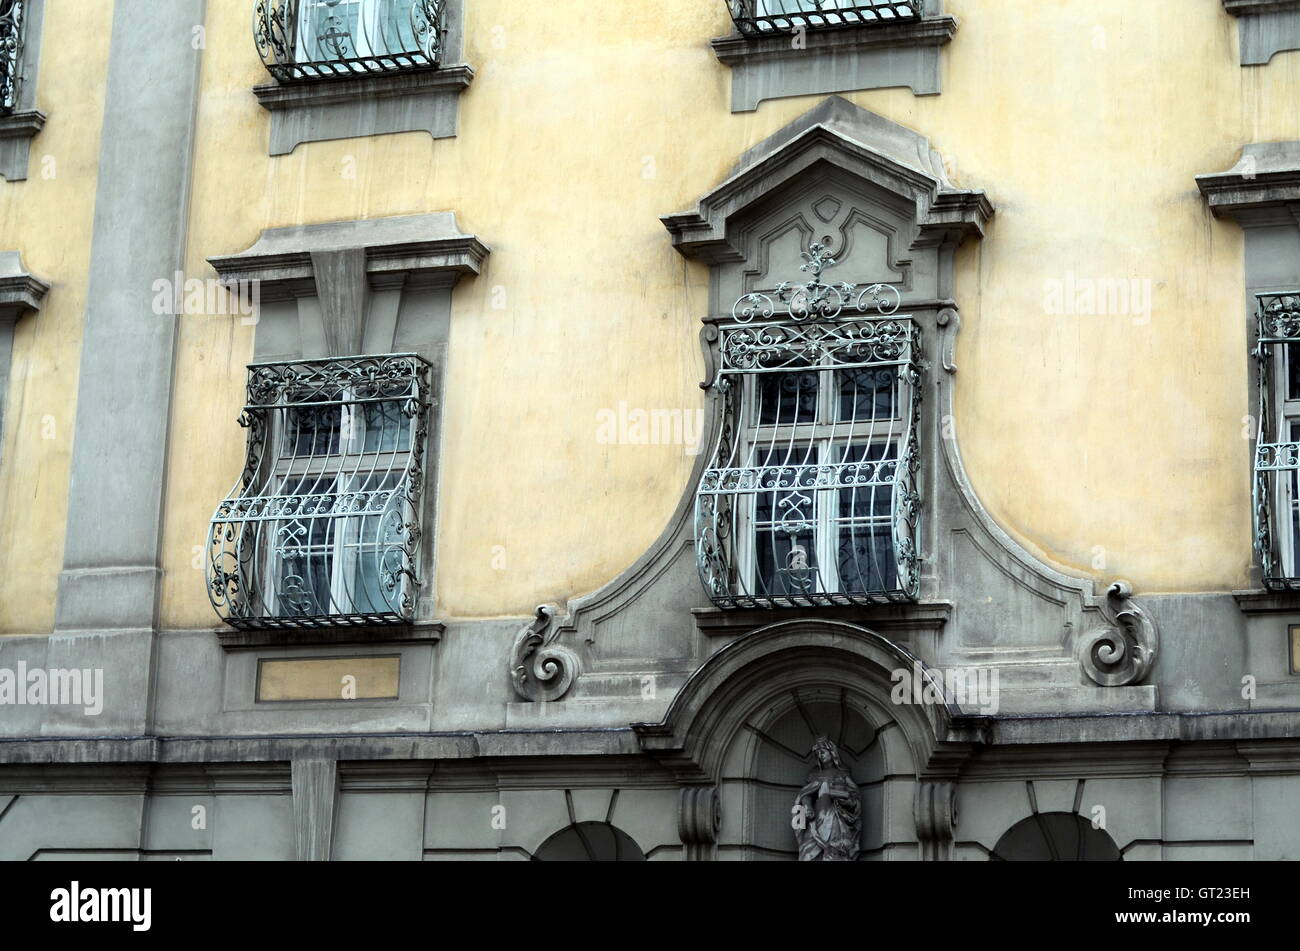 old facade of houses in the city of vienna - Stock Image